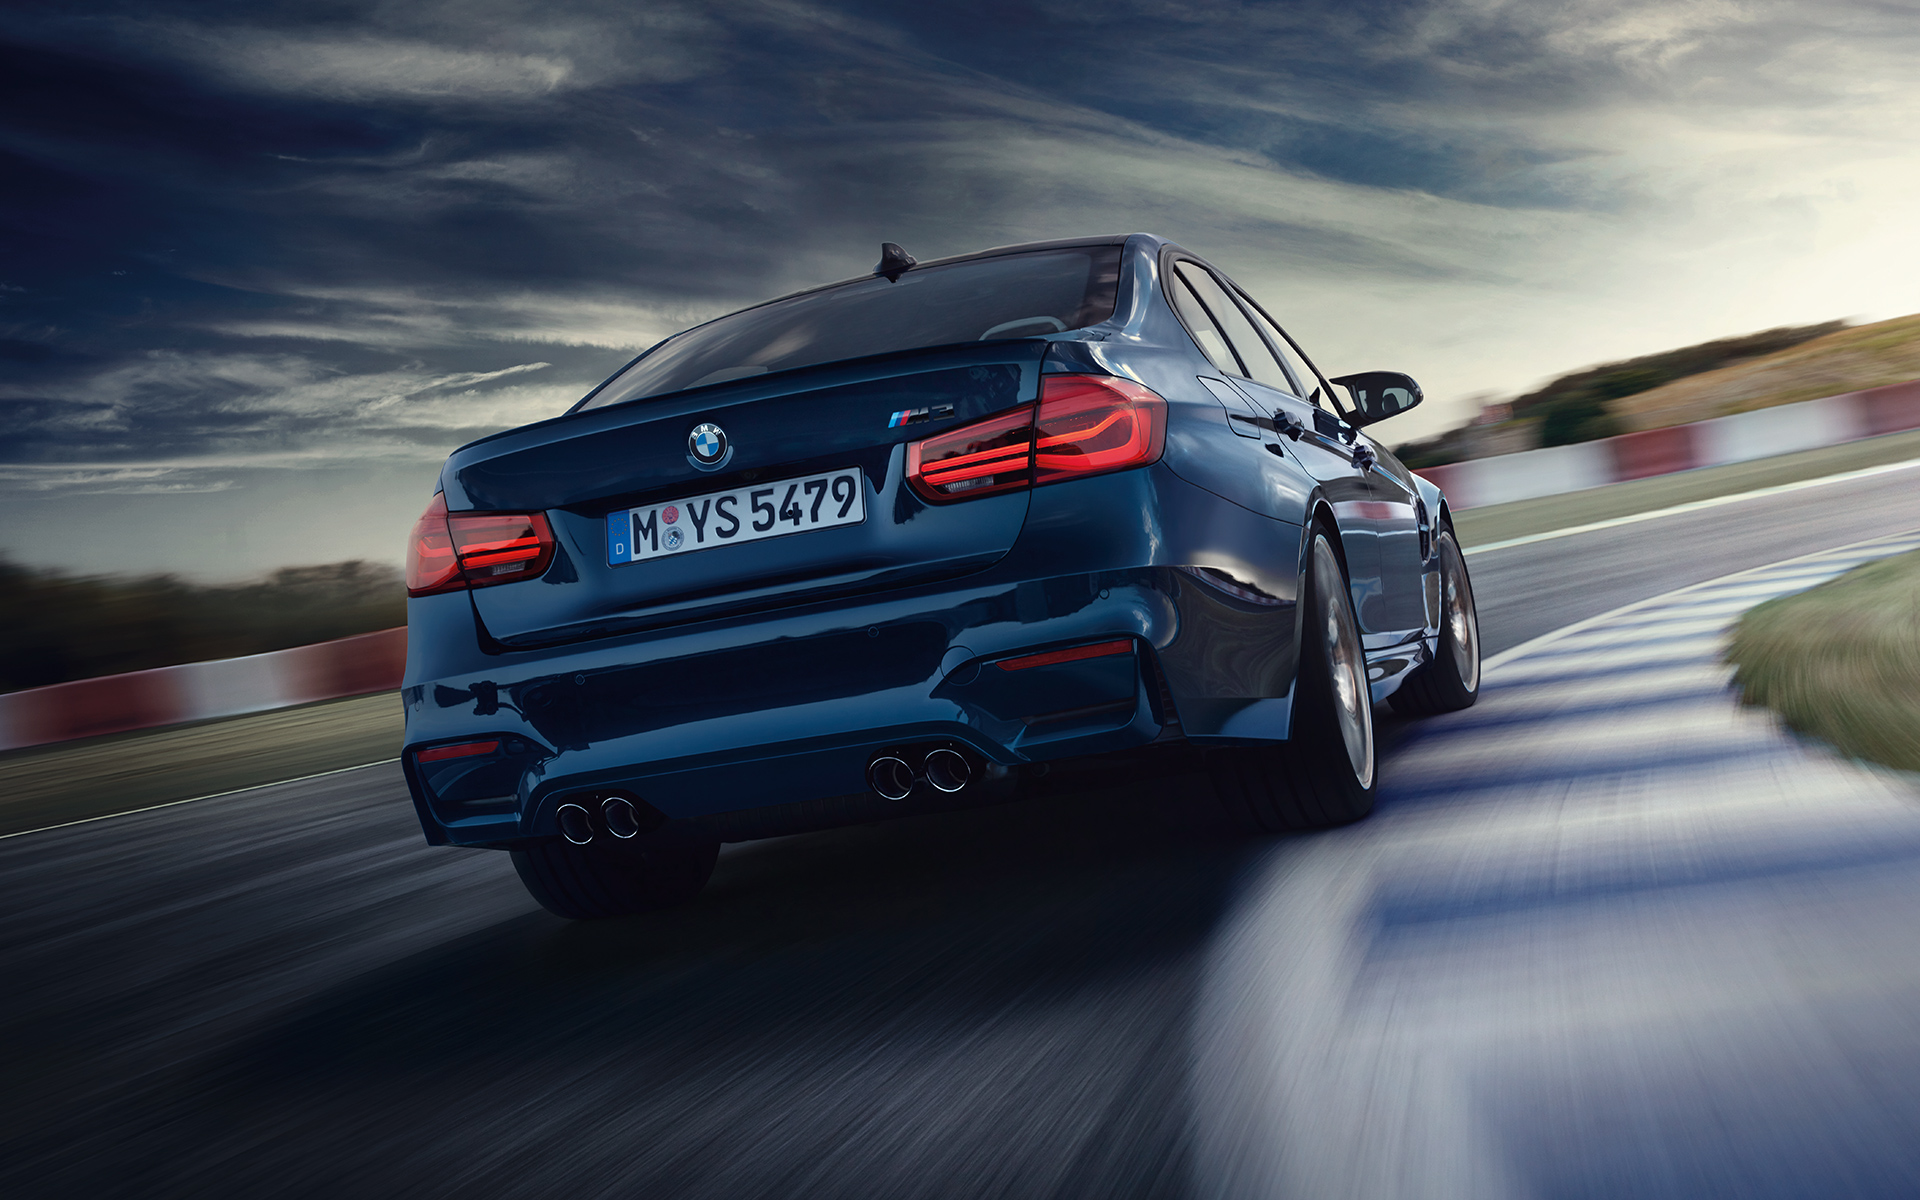 BMW M3 Sedan Rear View racetrack driving